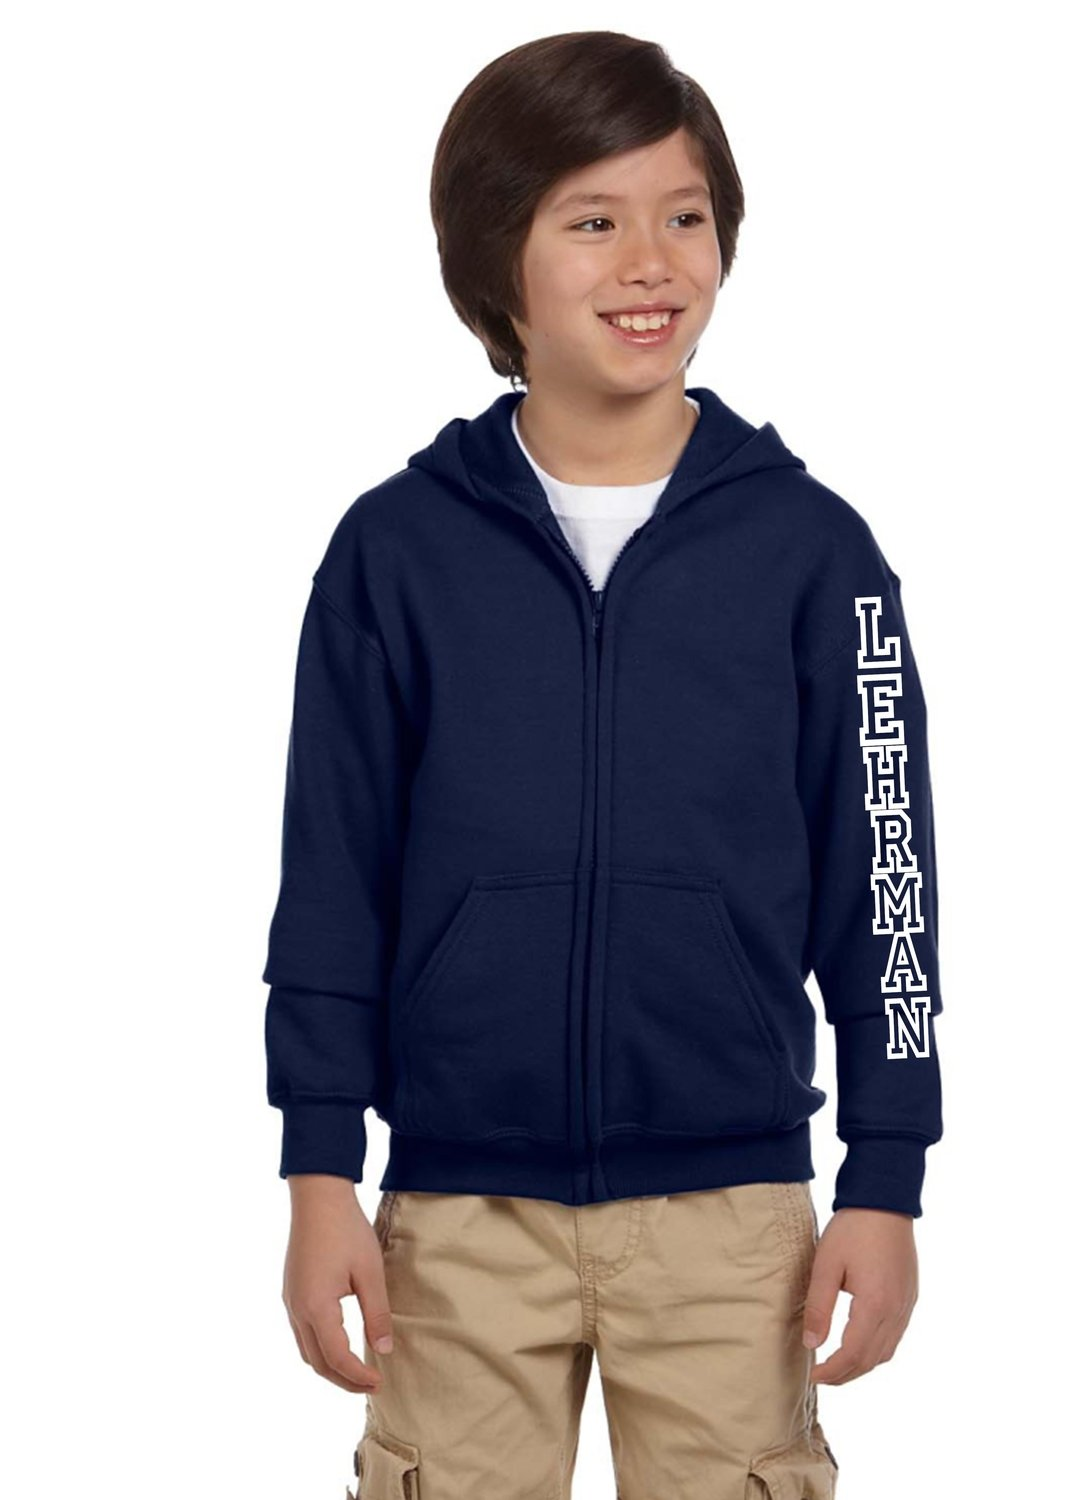 Lehrman Zip Front/Hood Sweatshirt Unisex YOUTH